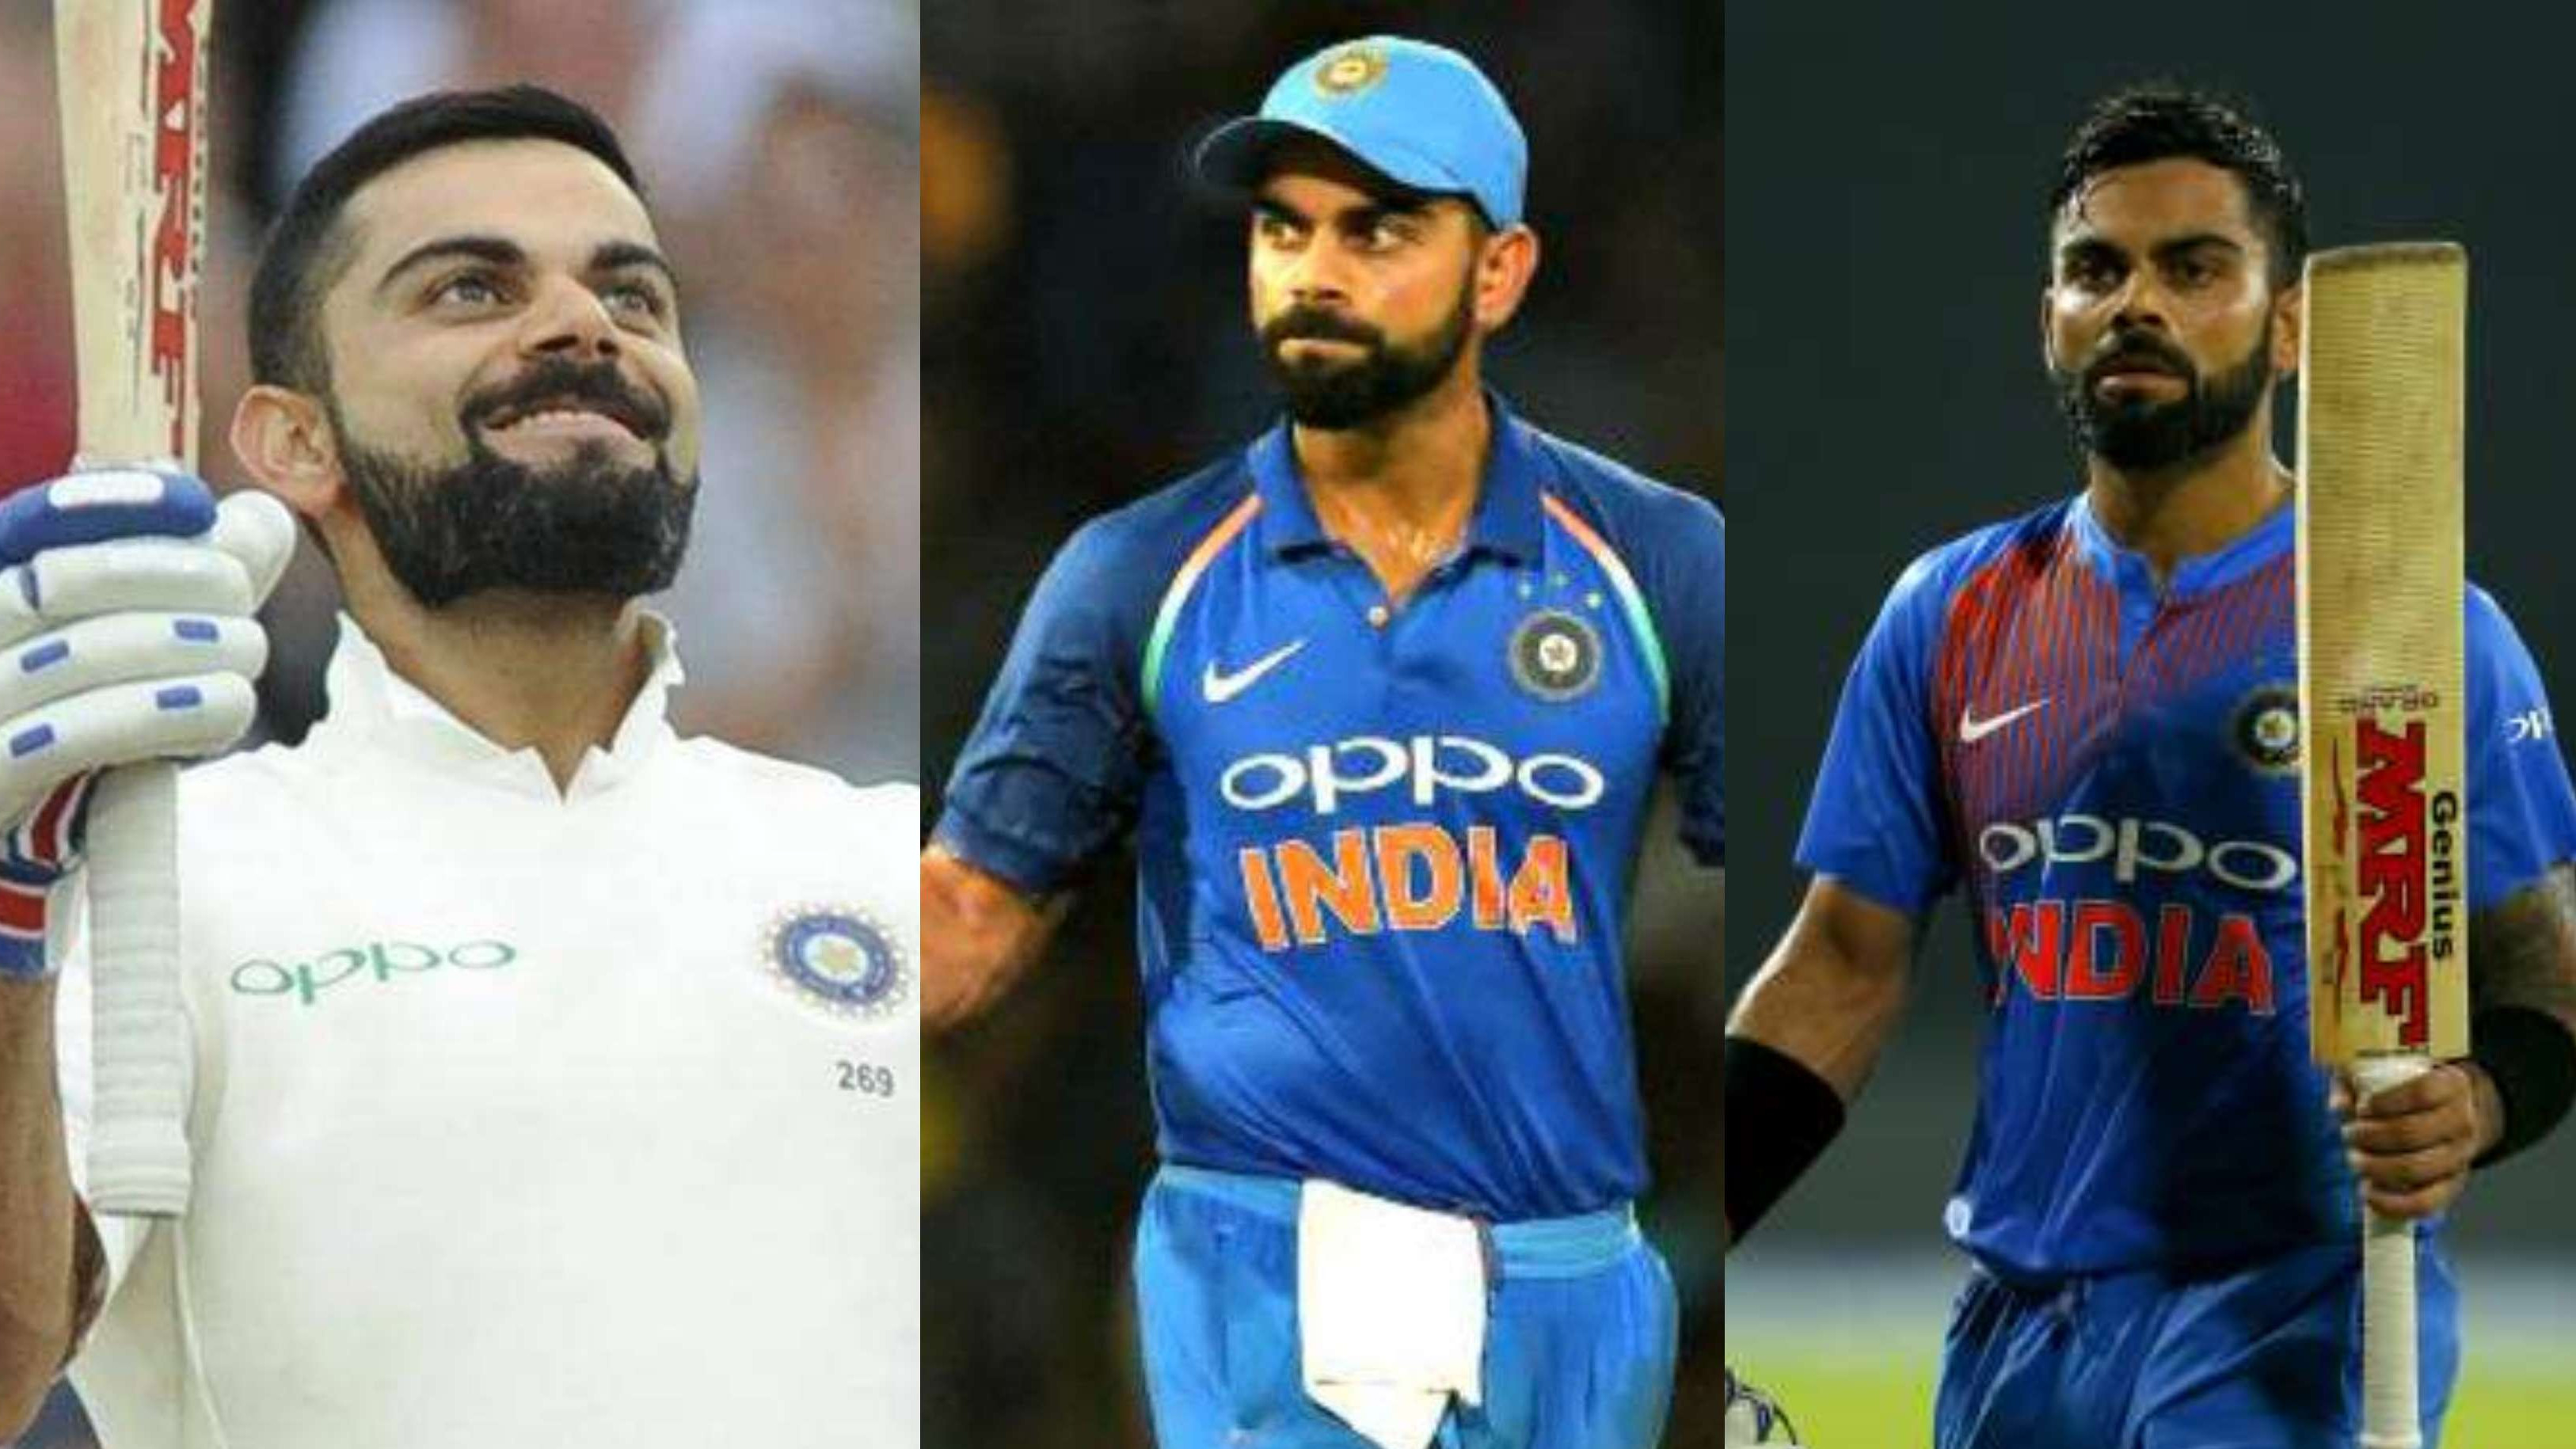 5 records that Virat 'King' Kohli might possibly break in coming future